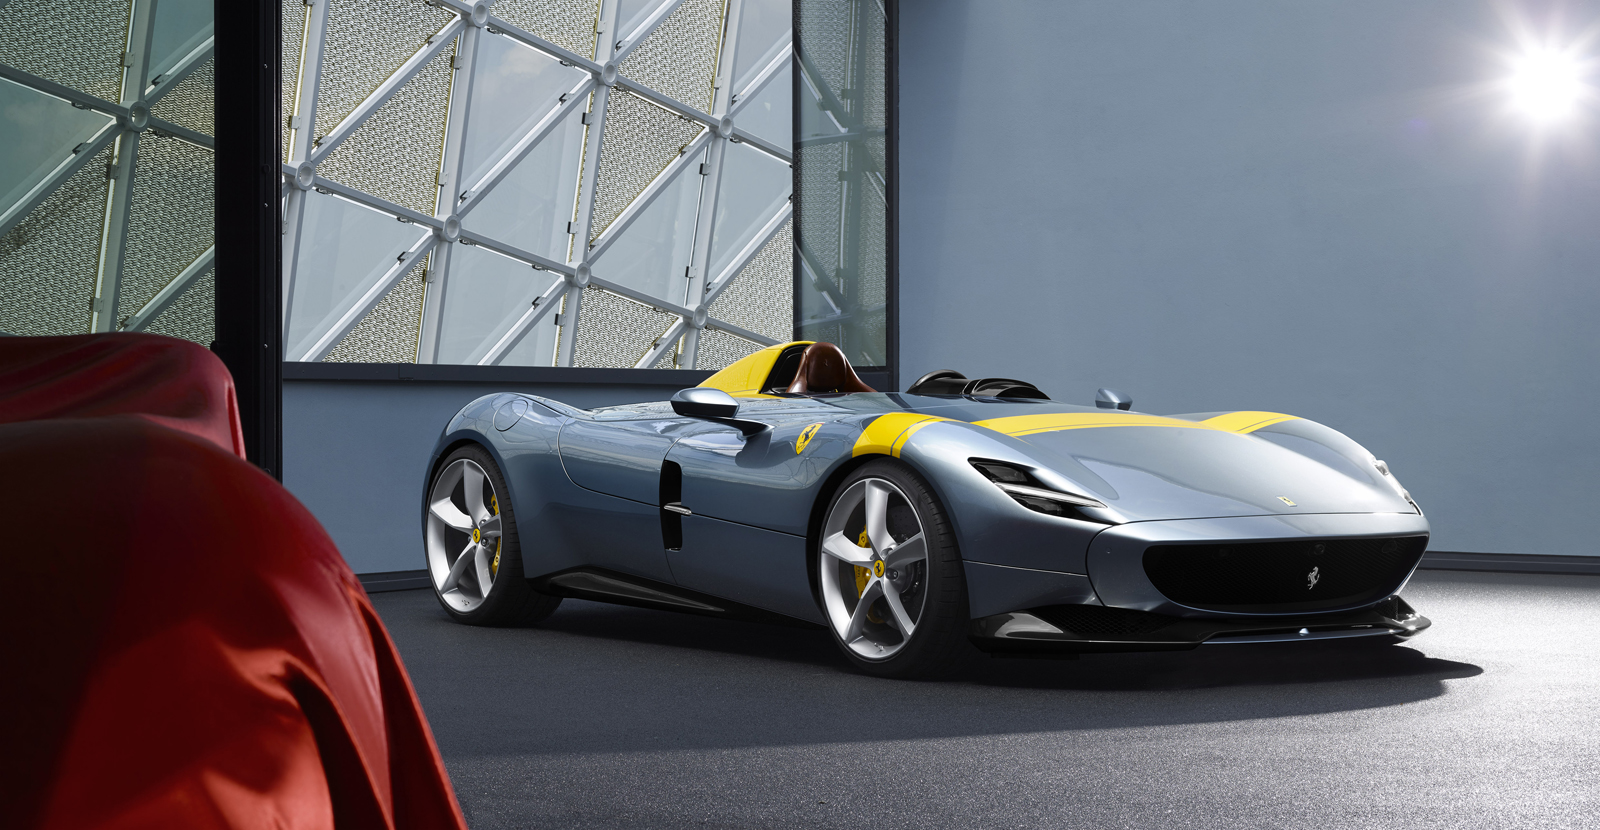 The Wild Ferrari SP1 and SP2 Have 800 HP and No Windshield